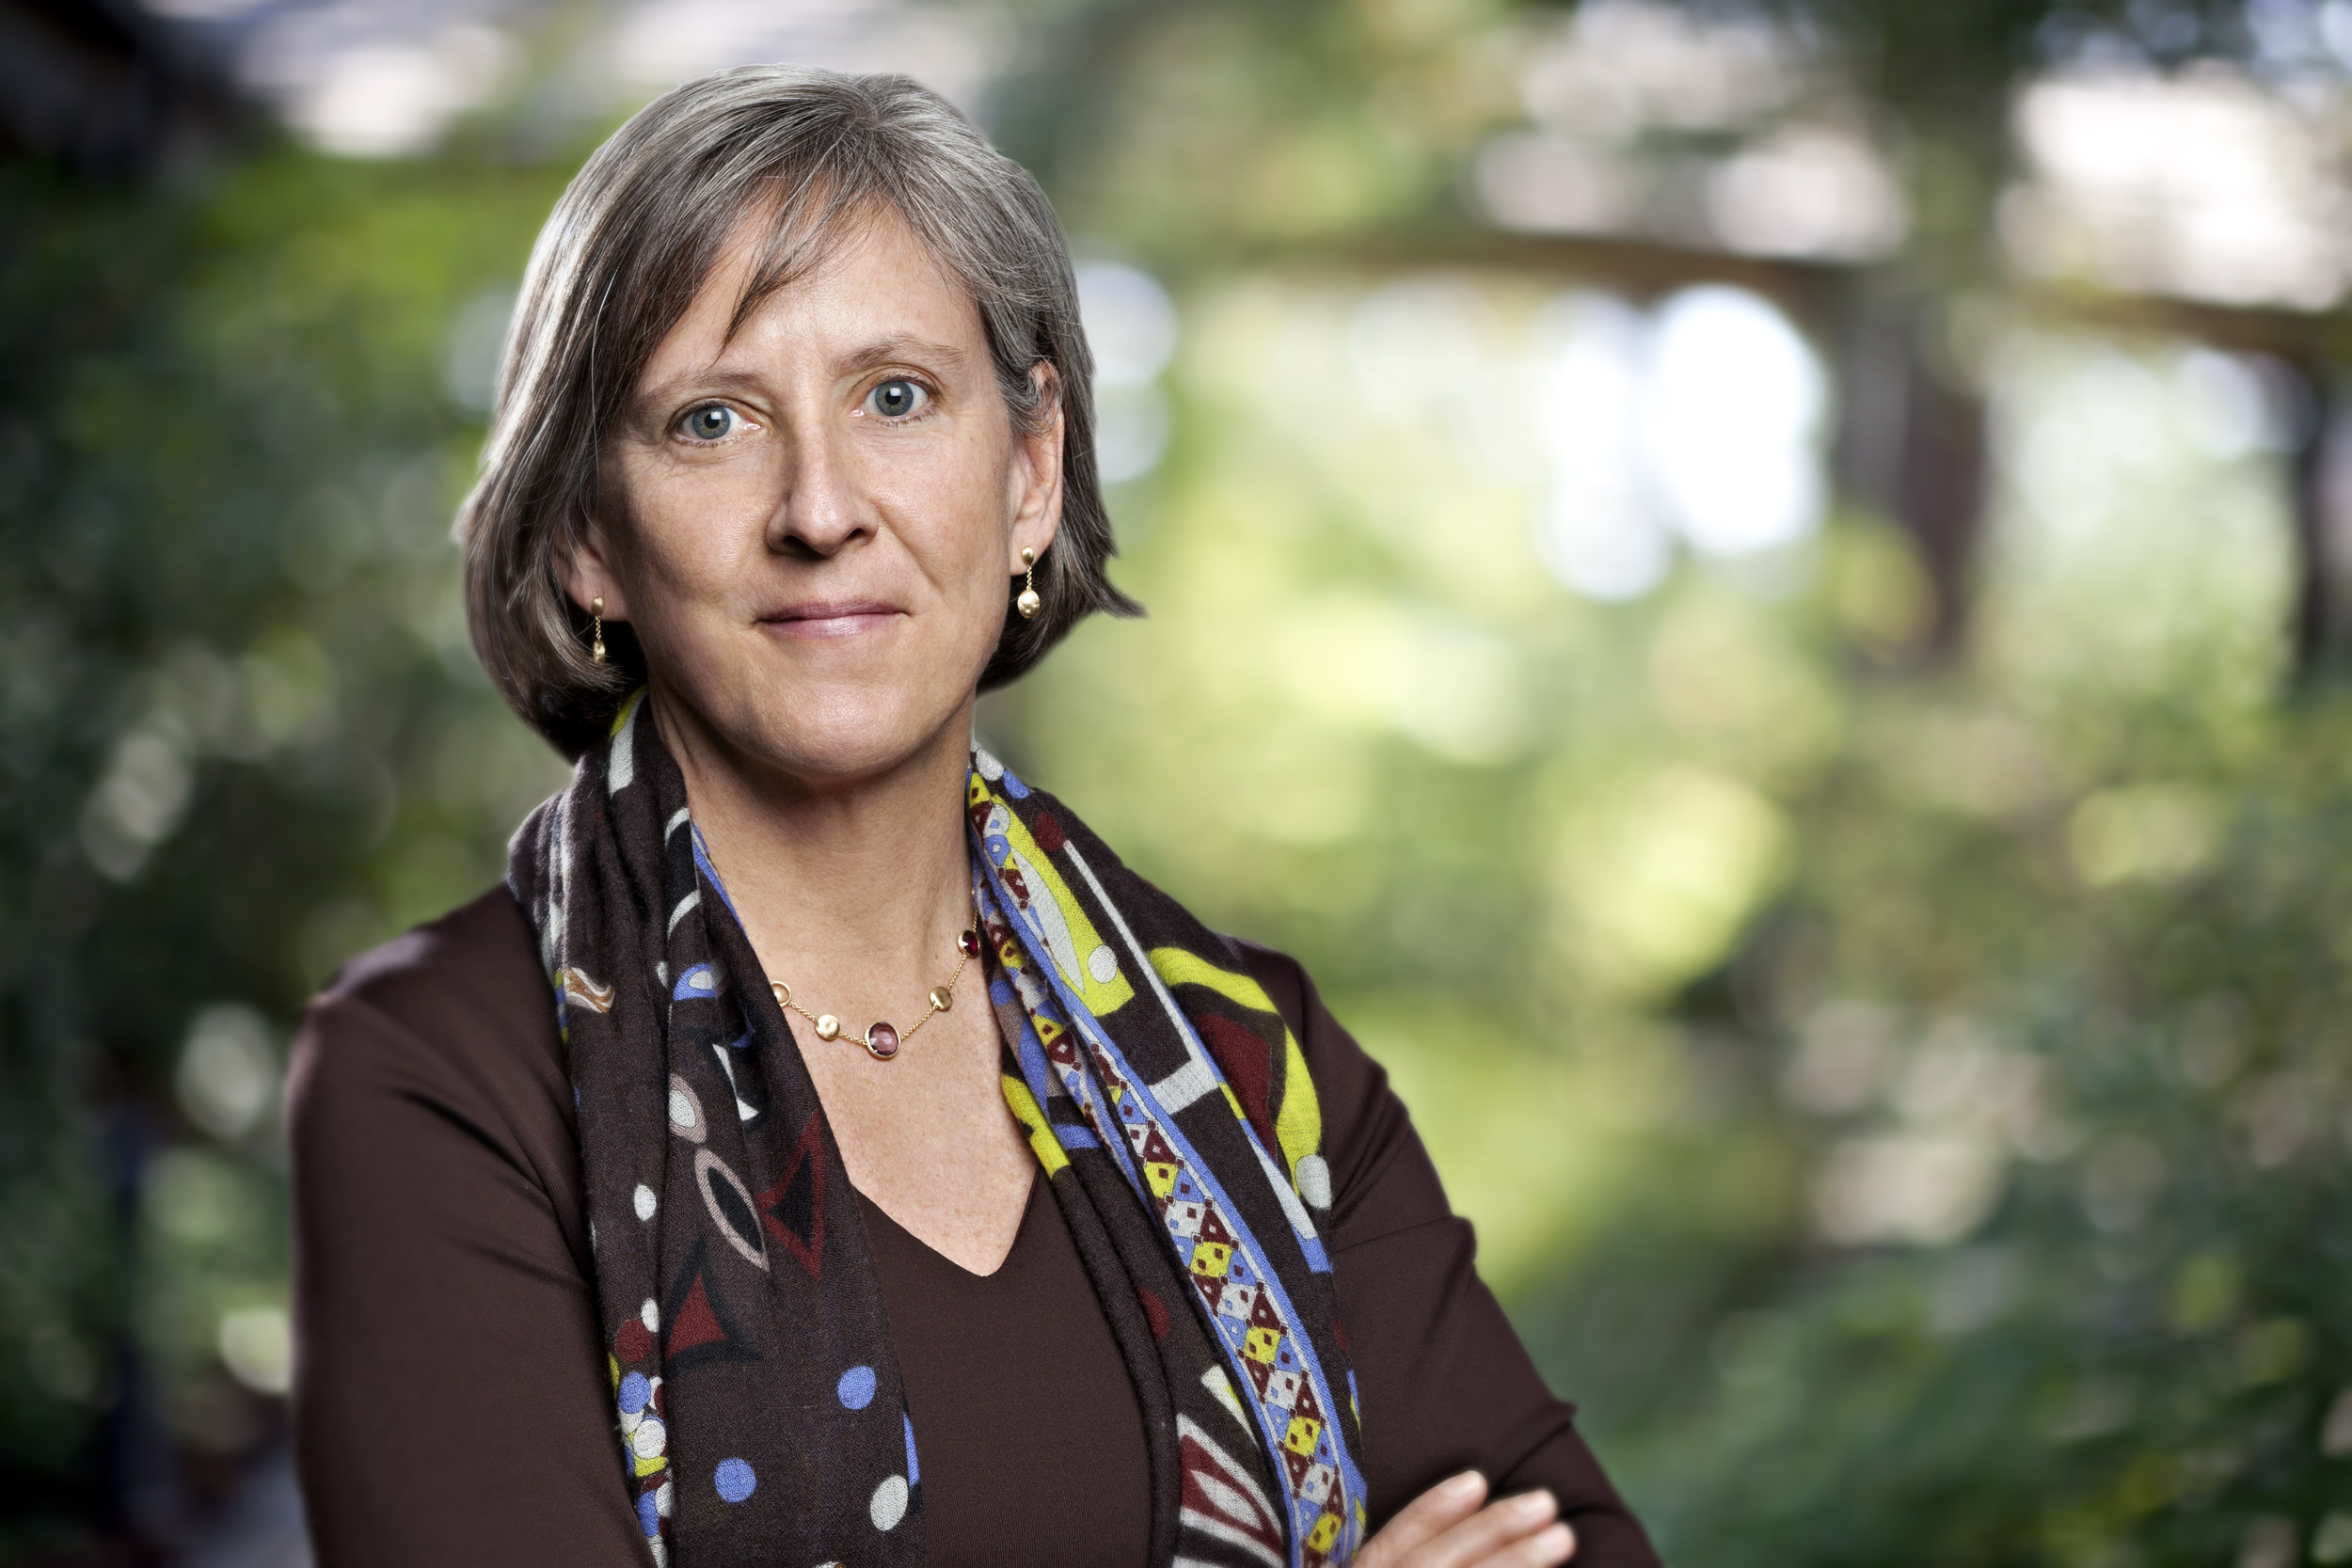 Mary Meeker of Kleiner Perkins Caufield and Byers